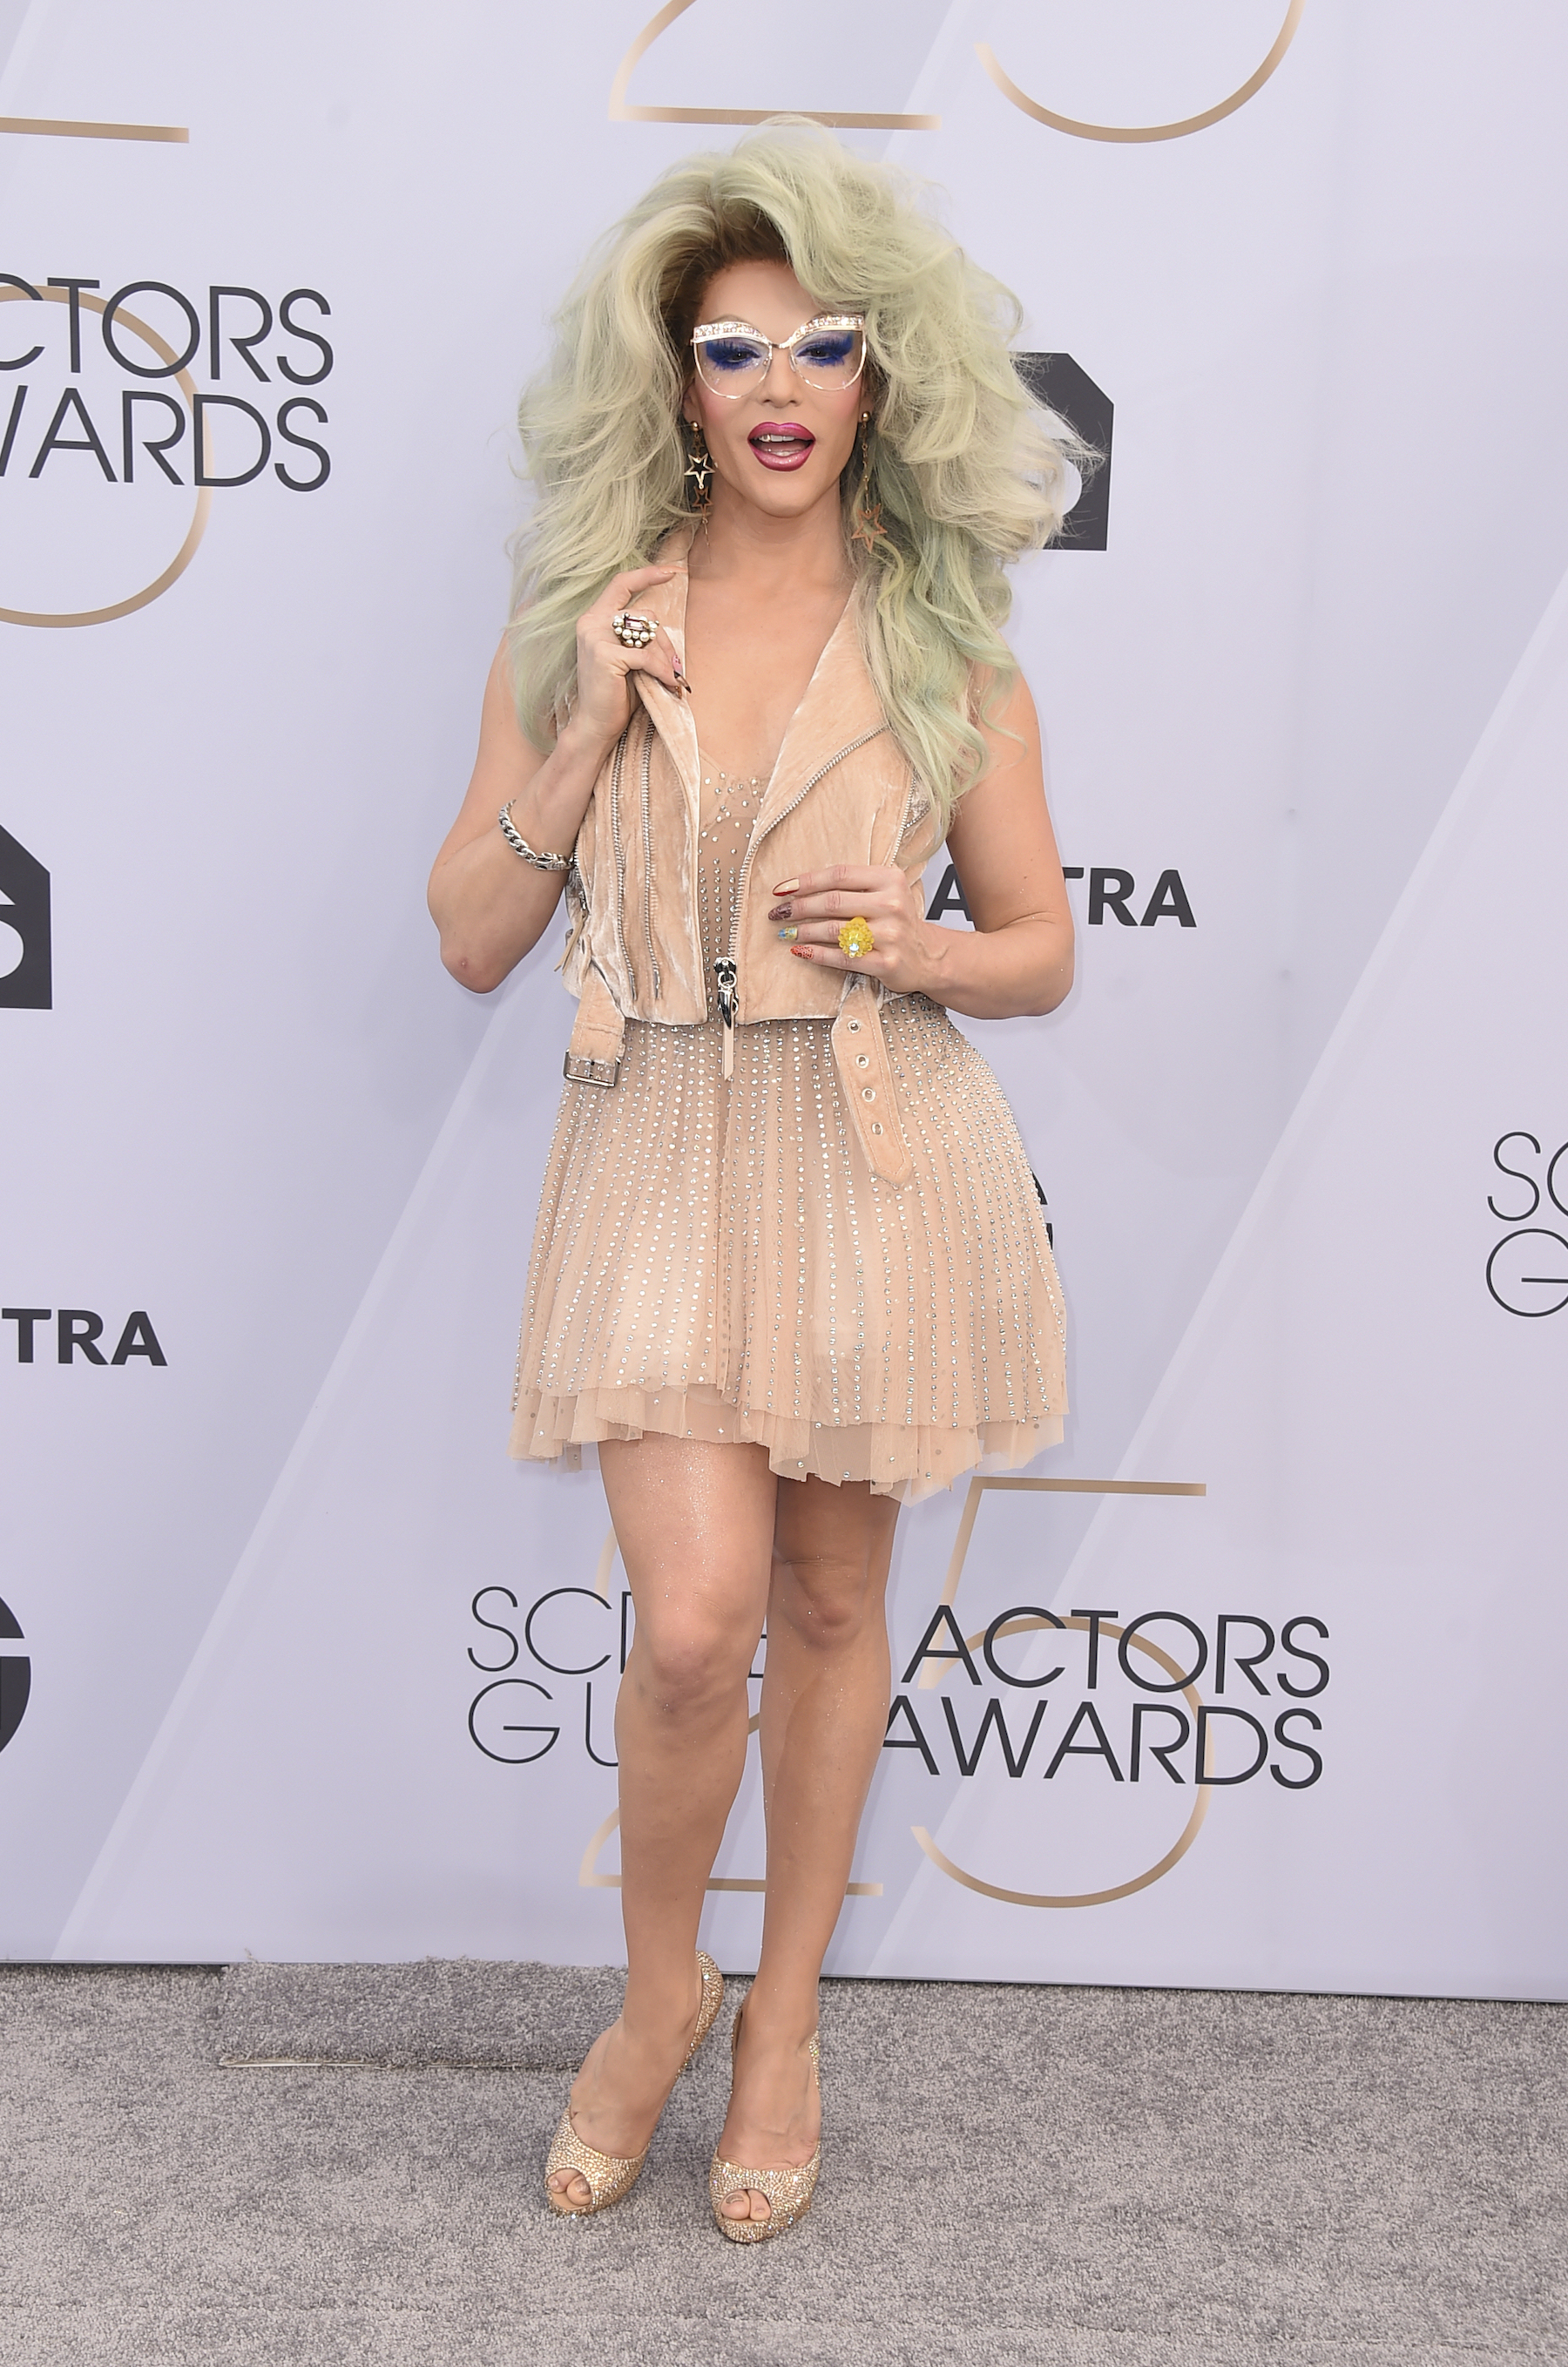 "<div class=""meta image-caption""><div class=""origin-logo origin-image ap""><span>AP</span></div><span class=""caption-text"">Willam Belli arrives at the 25th annual Screen Actors Guild Awards at the Shrine Auditorium & Expo Hall on Sunday, Jan. 27, 2019, in Los Angeles. (Jordan Strauss/Invision/AP)</span></div>"